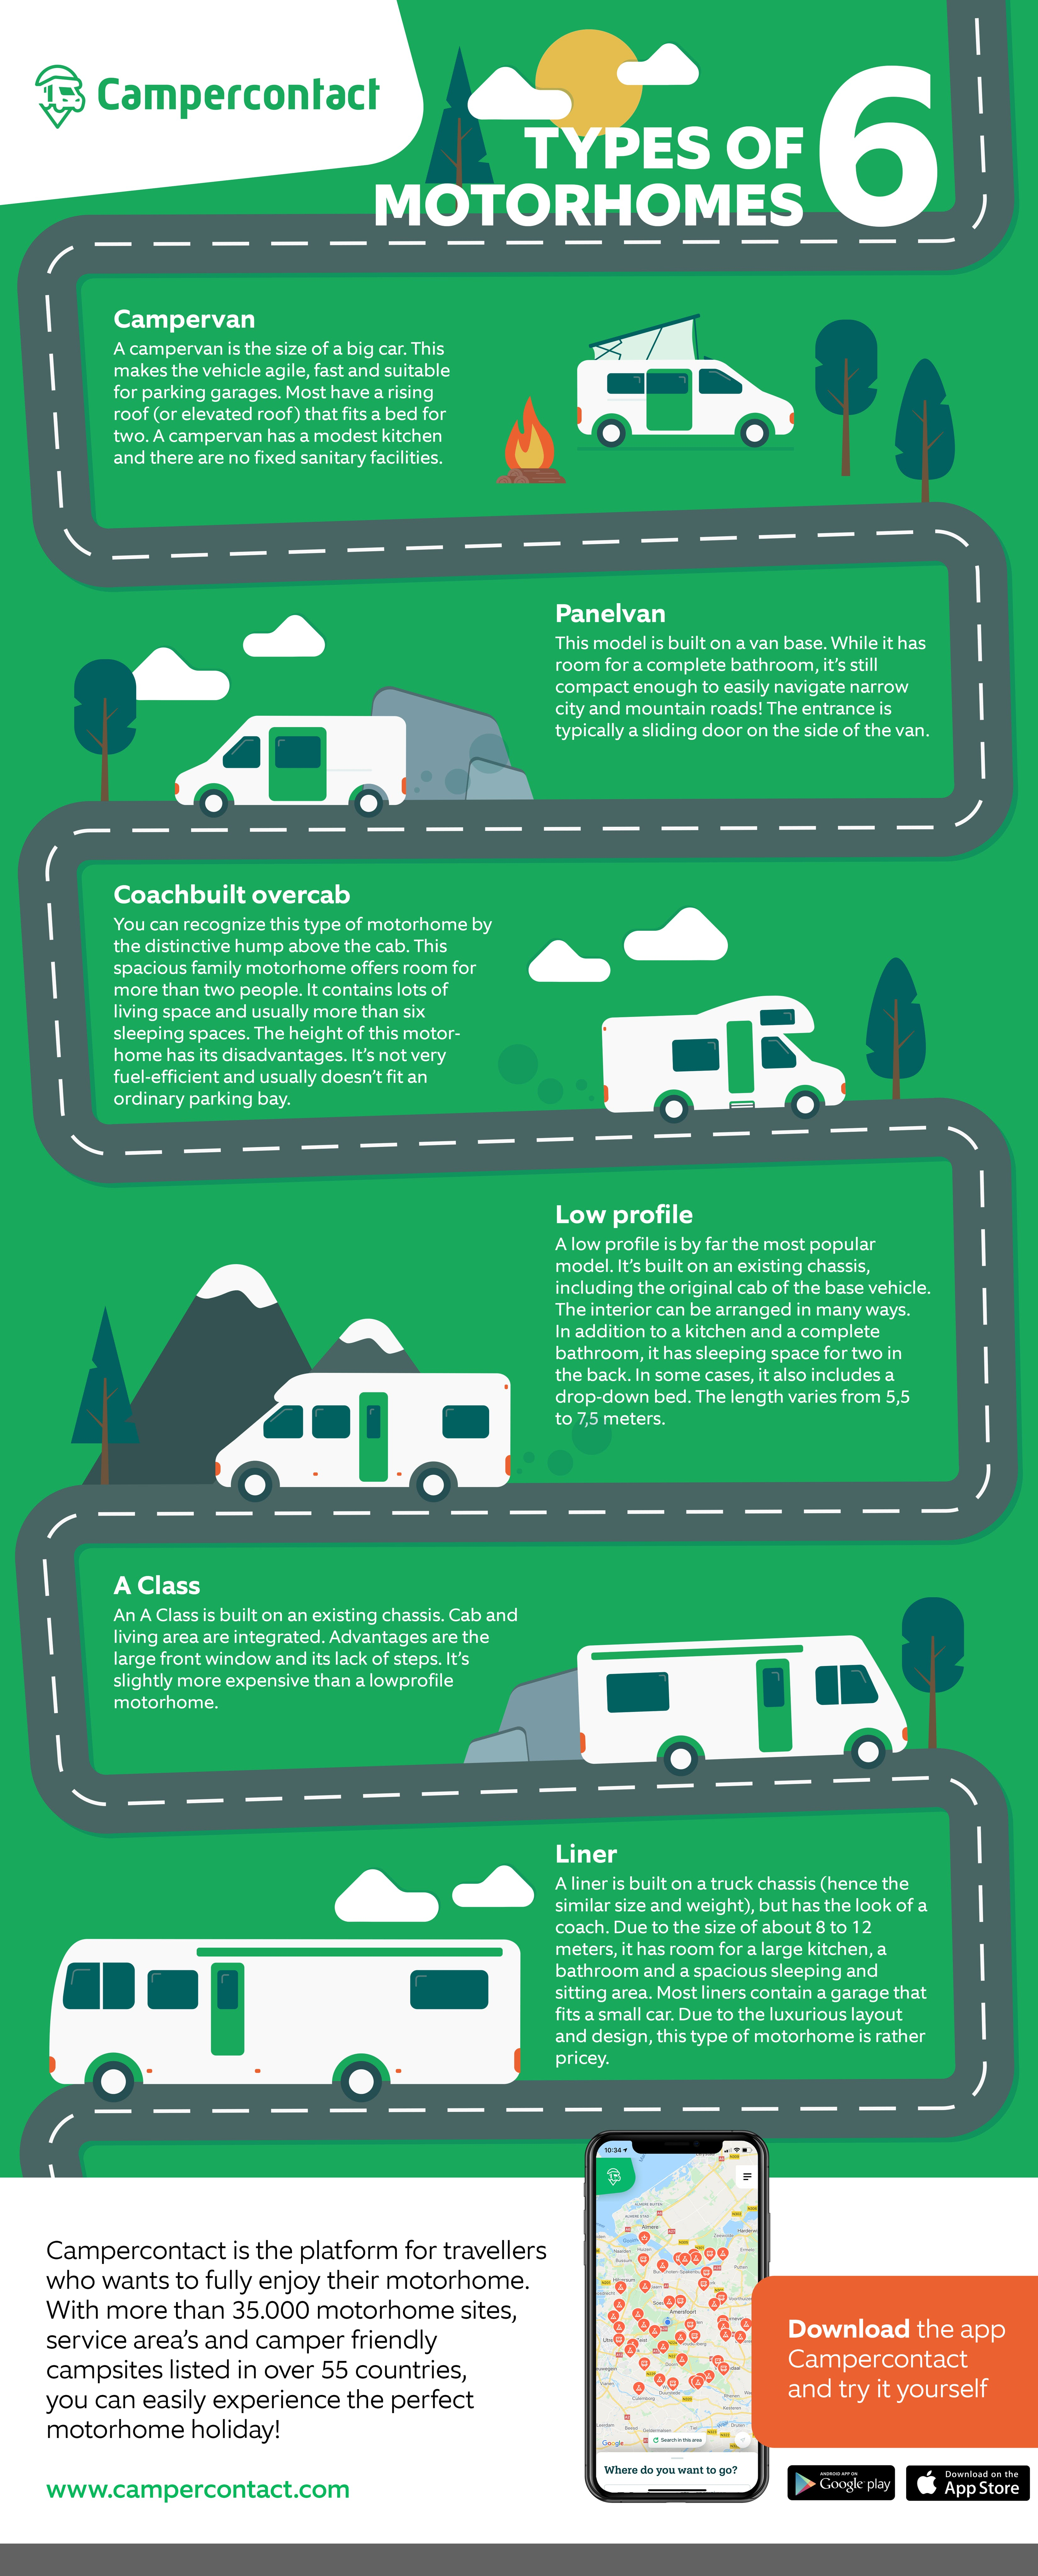 Campercontact - 6 Types of motorhomes